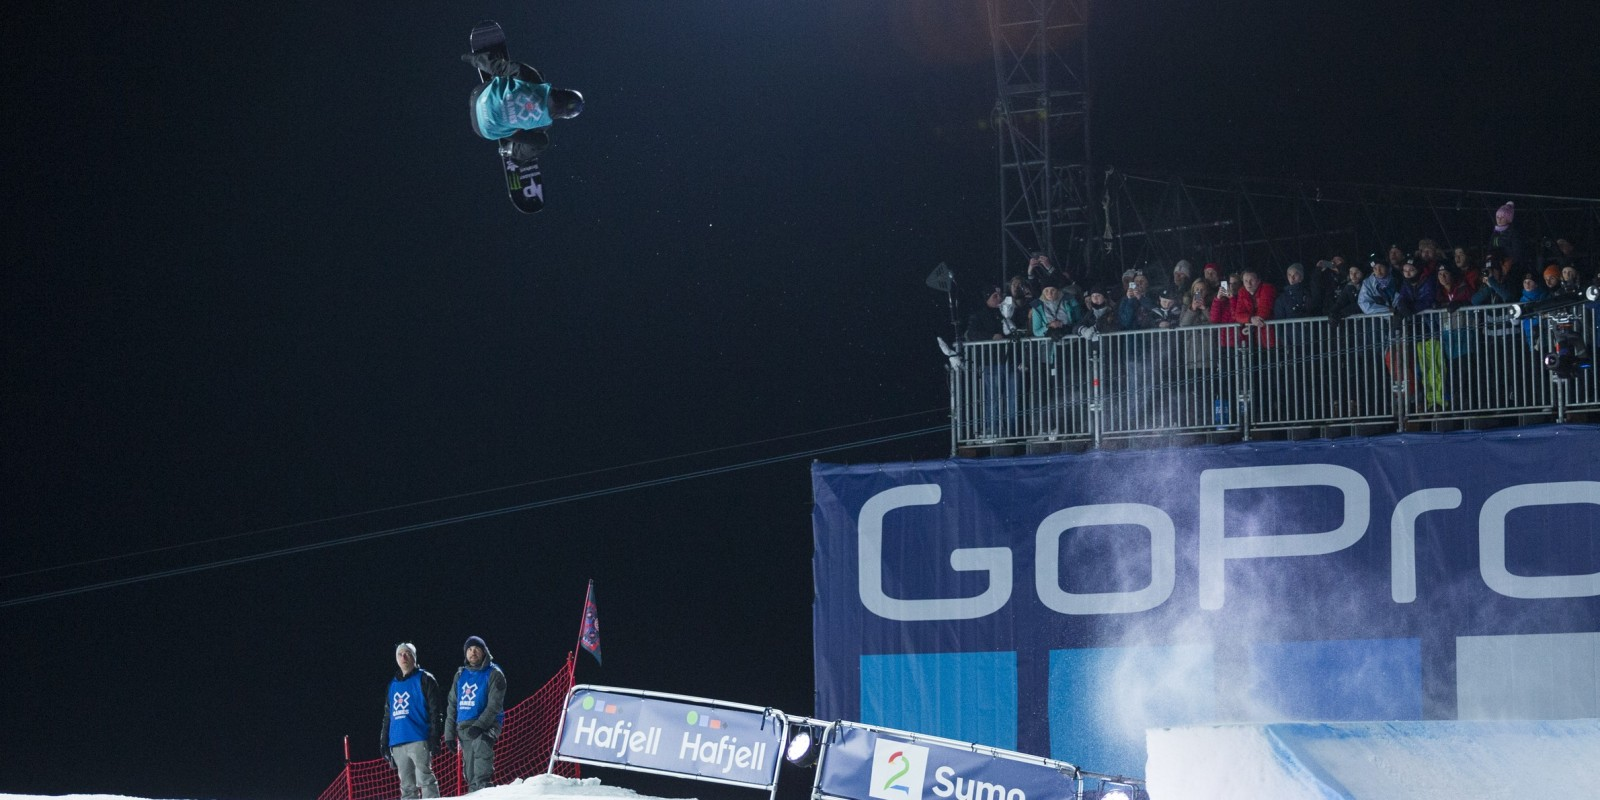 Max Parrot Takes Silver in Snowboard Big Air at X Games Norway 2017